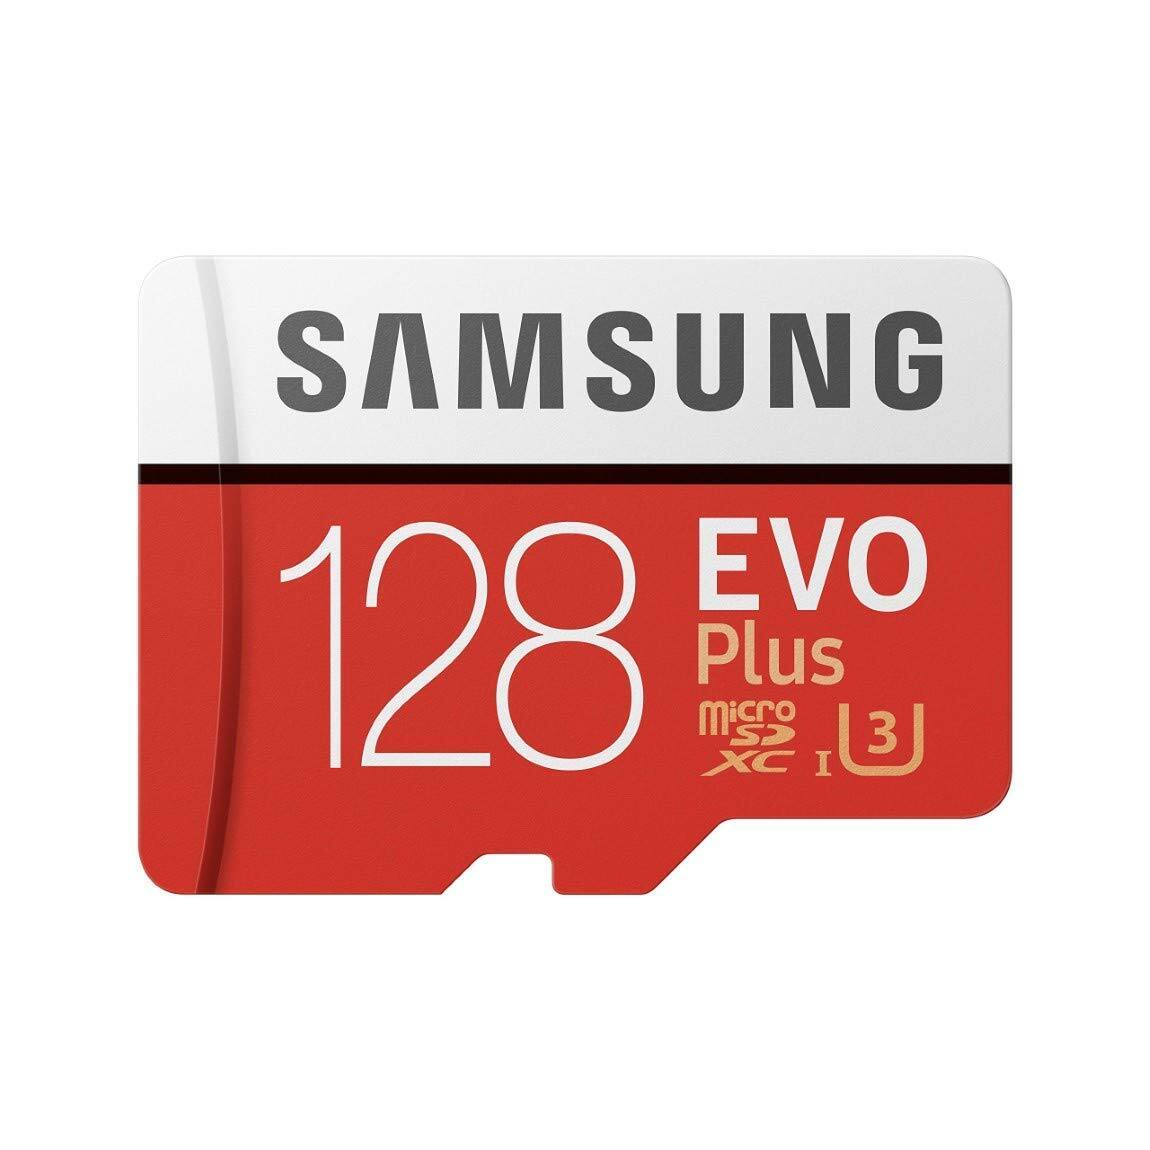 Samsung 128GB EVO Plus Class 10 Micro SDXC with Adapter (MB-MC128GA) $23.50